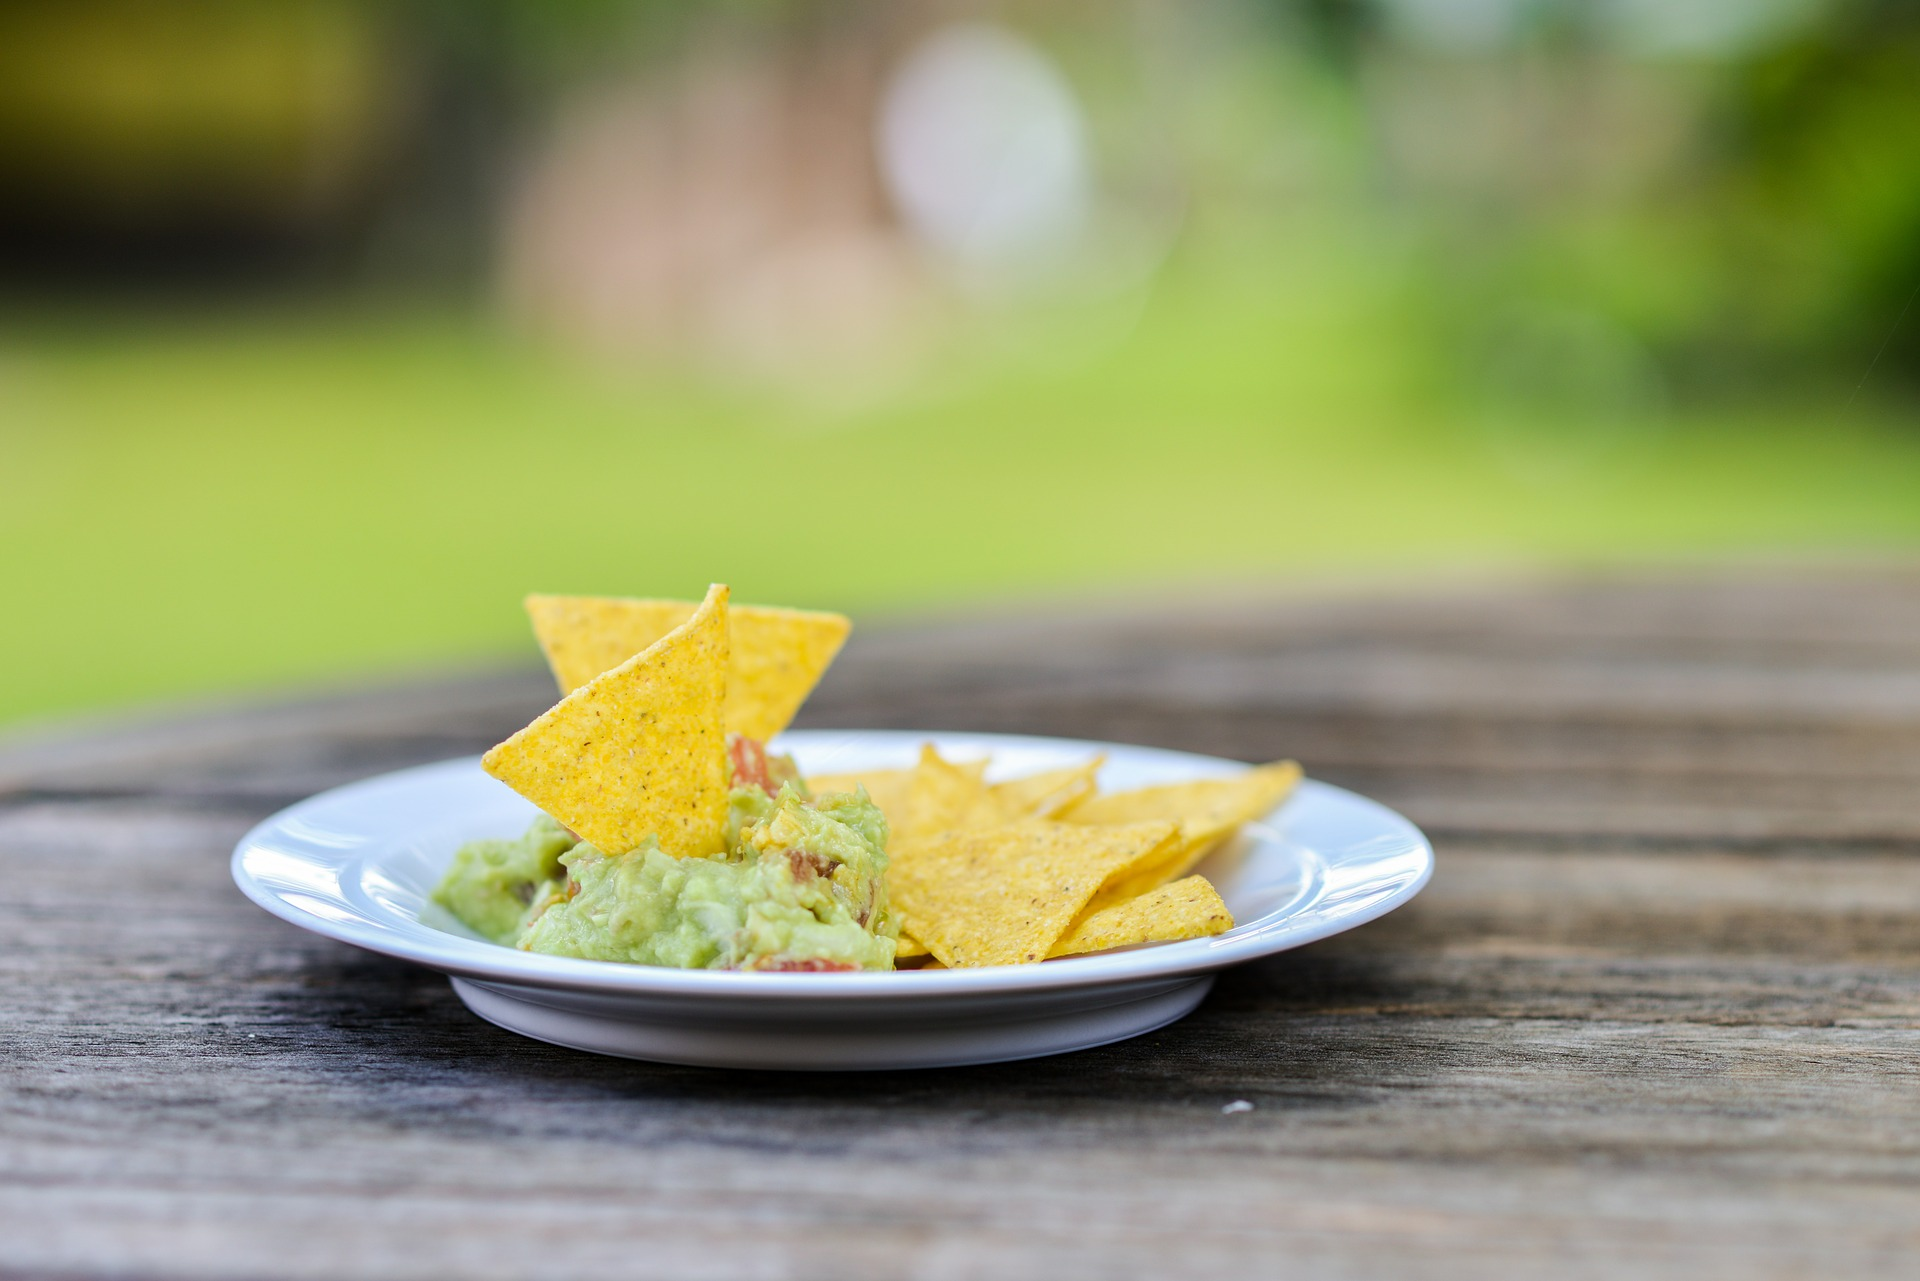 Sabra Guacamole vs. Wholly Guacamole